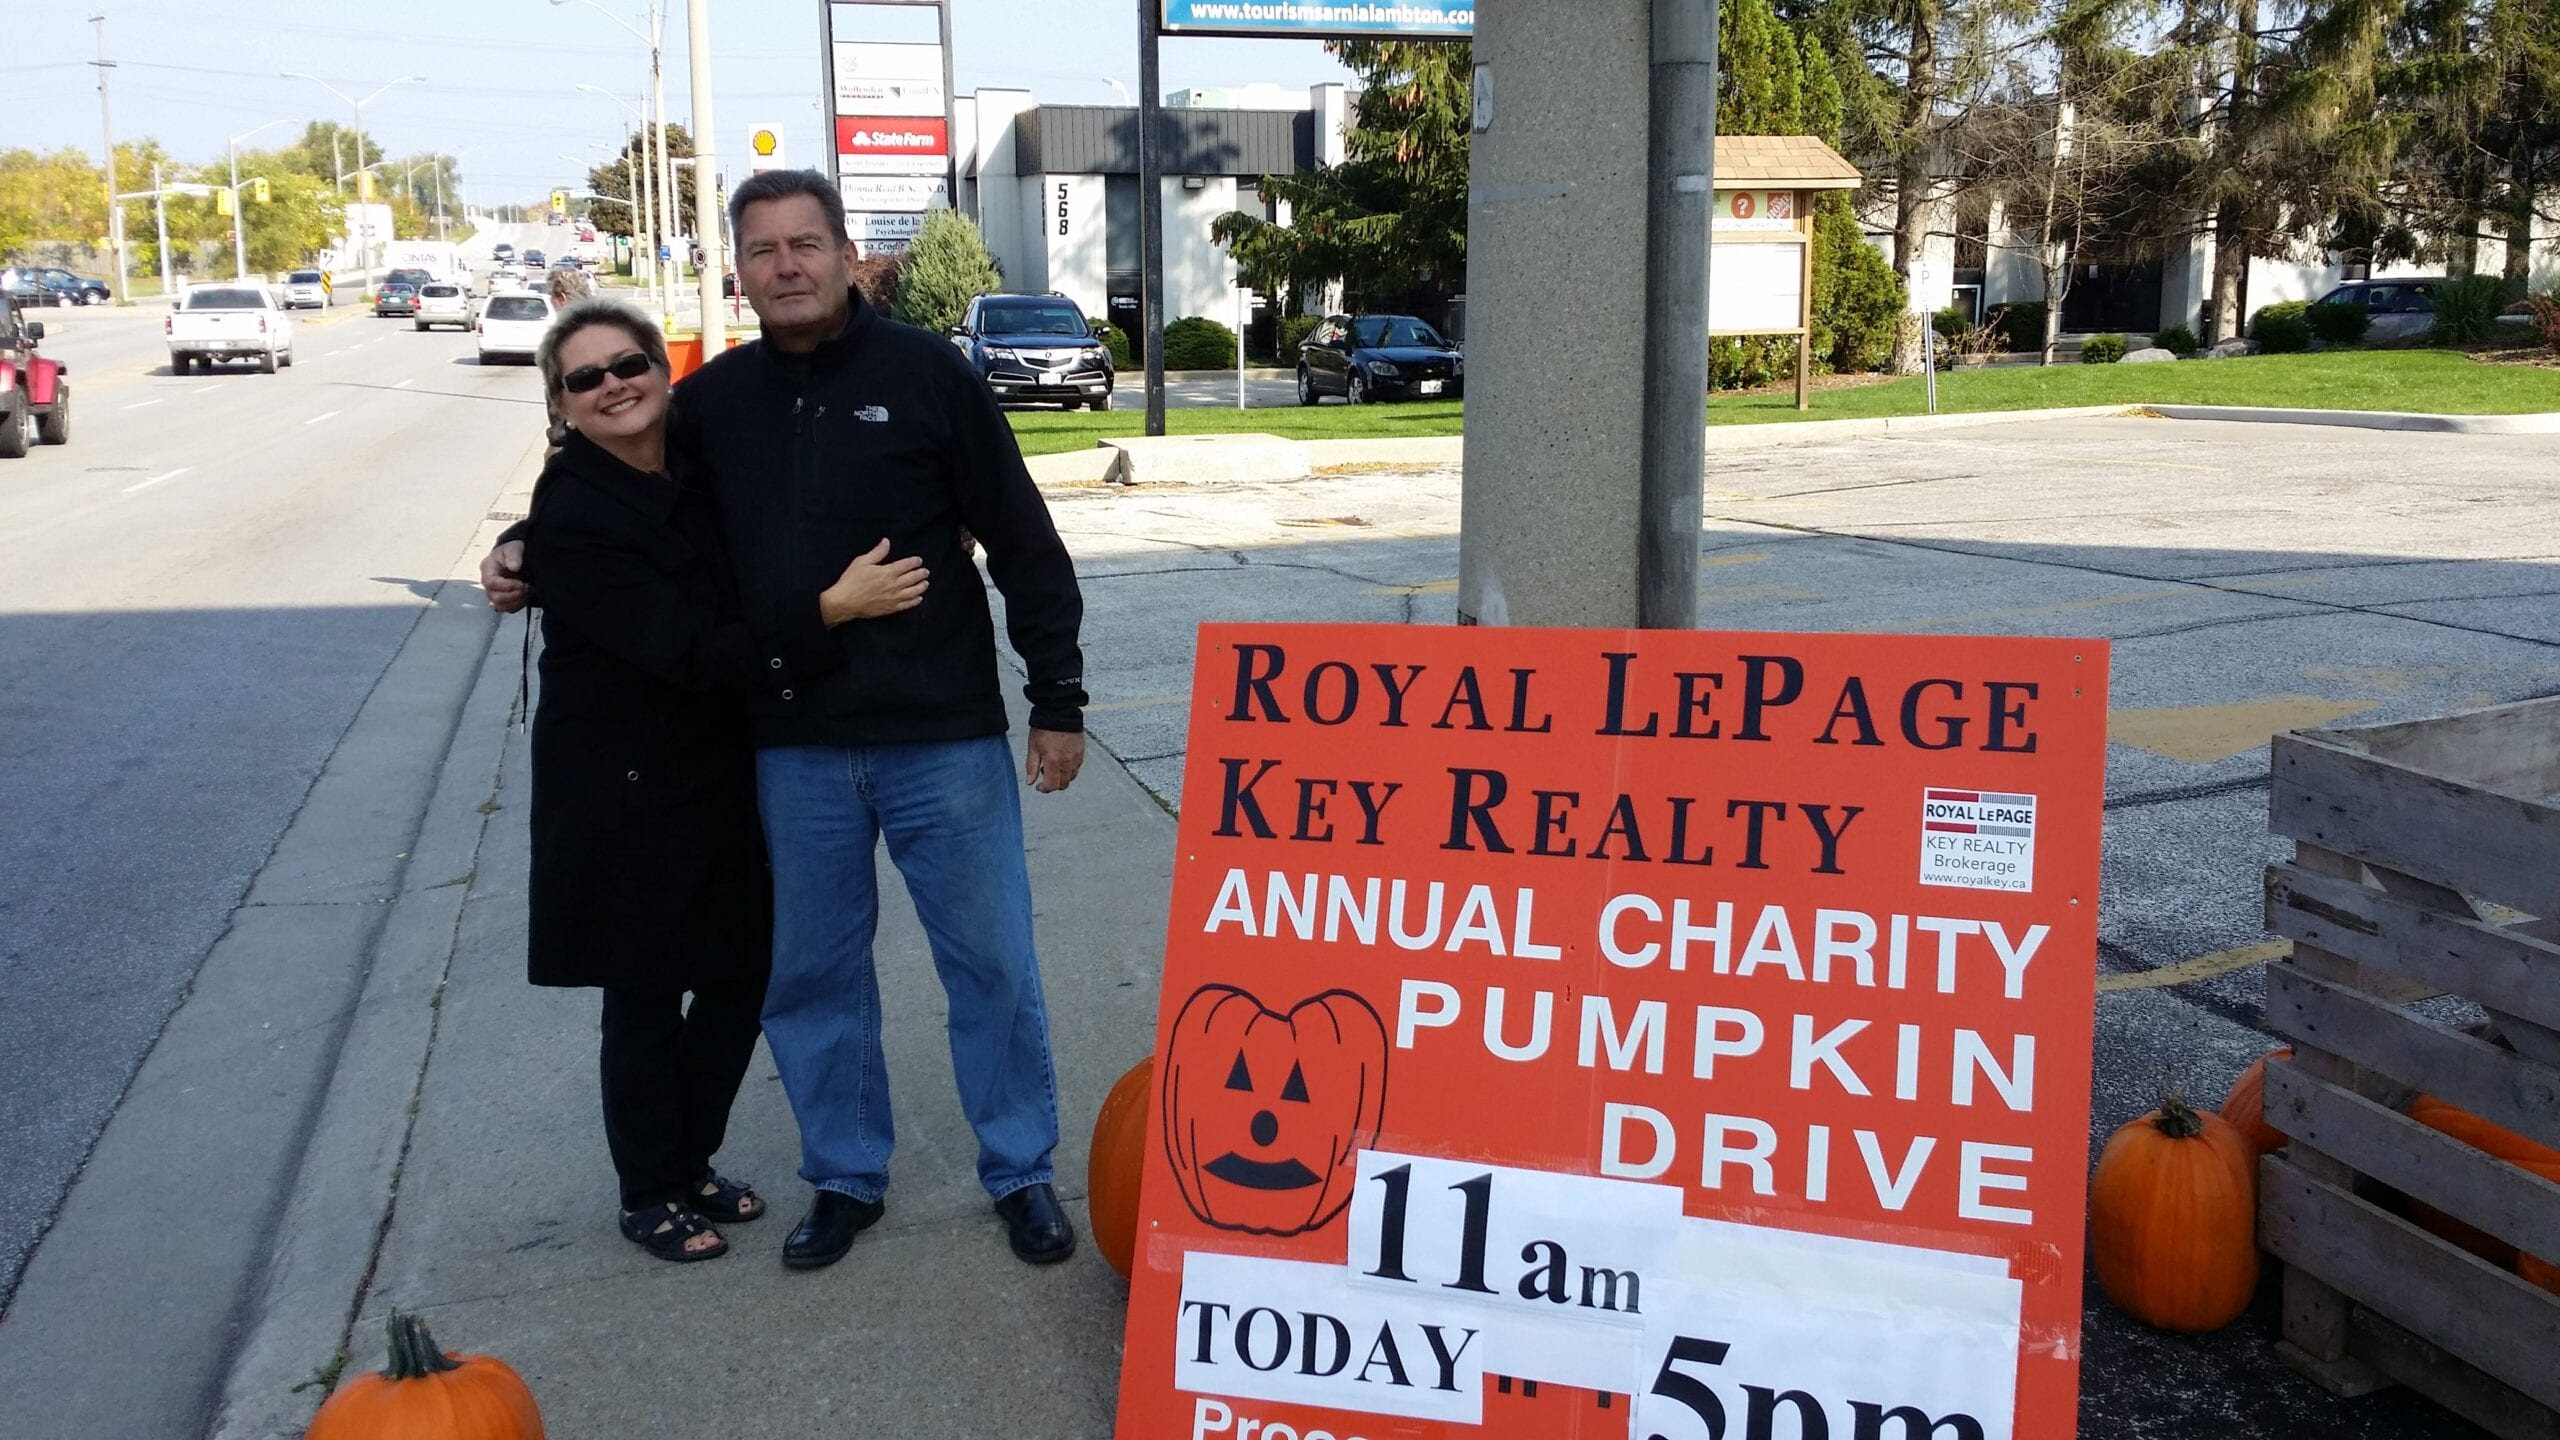 royal lepage charity